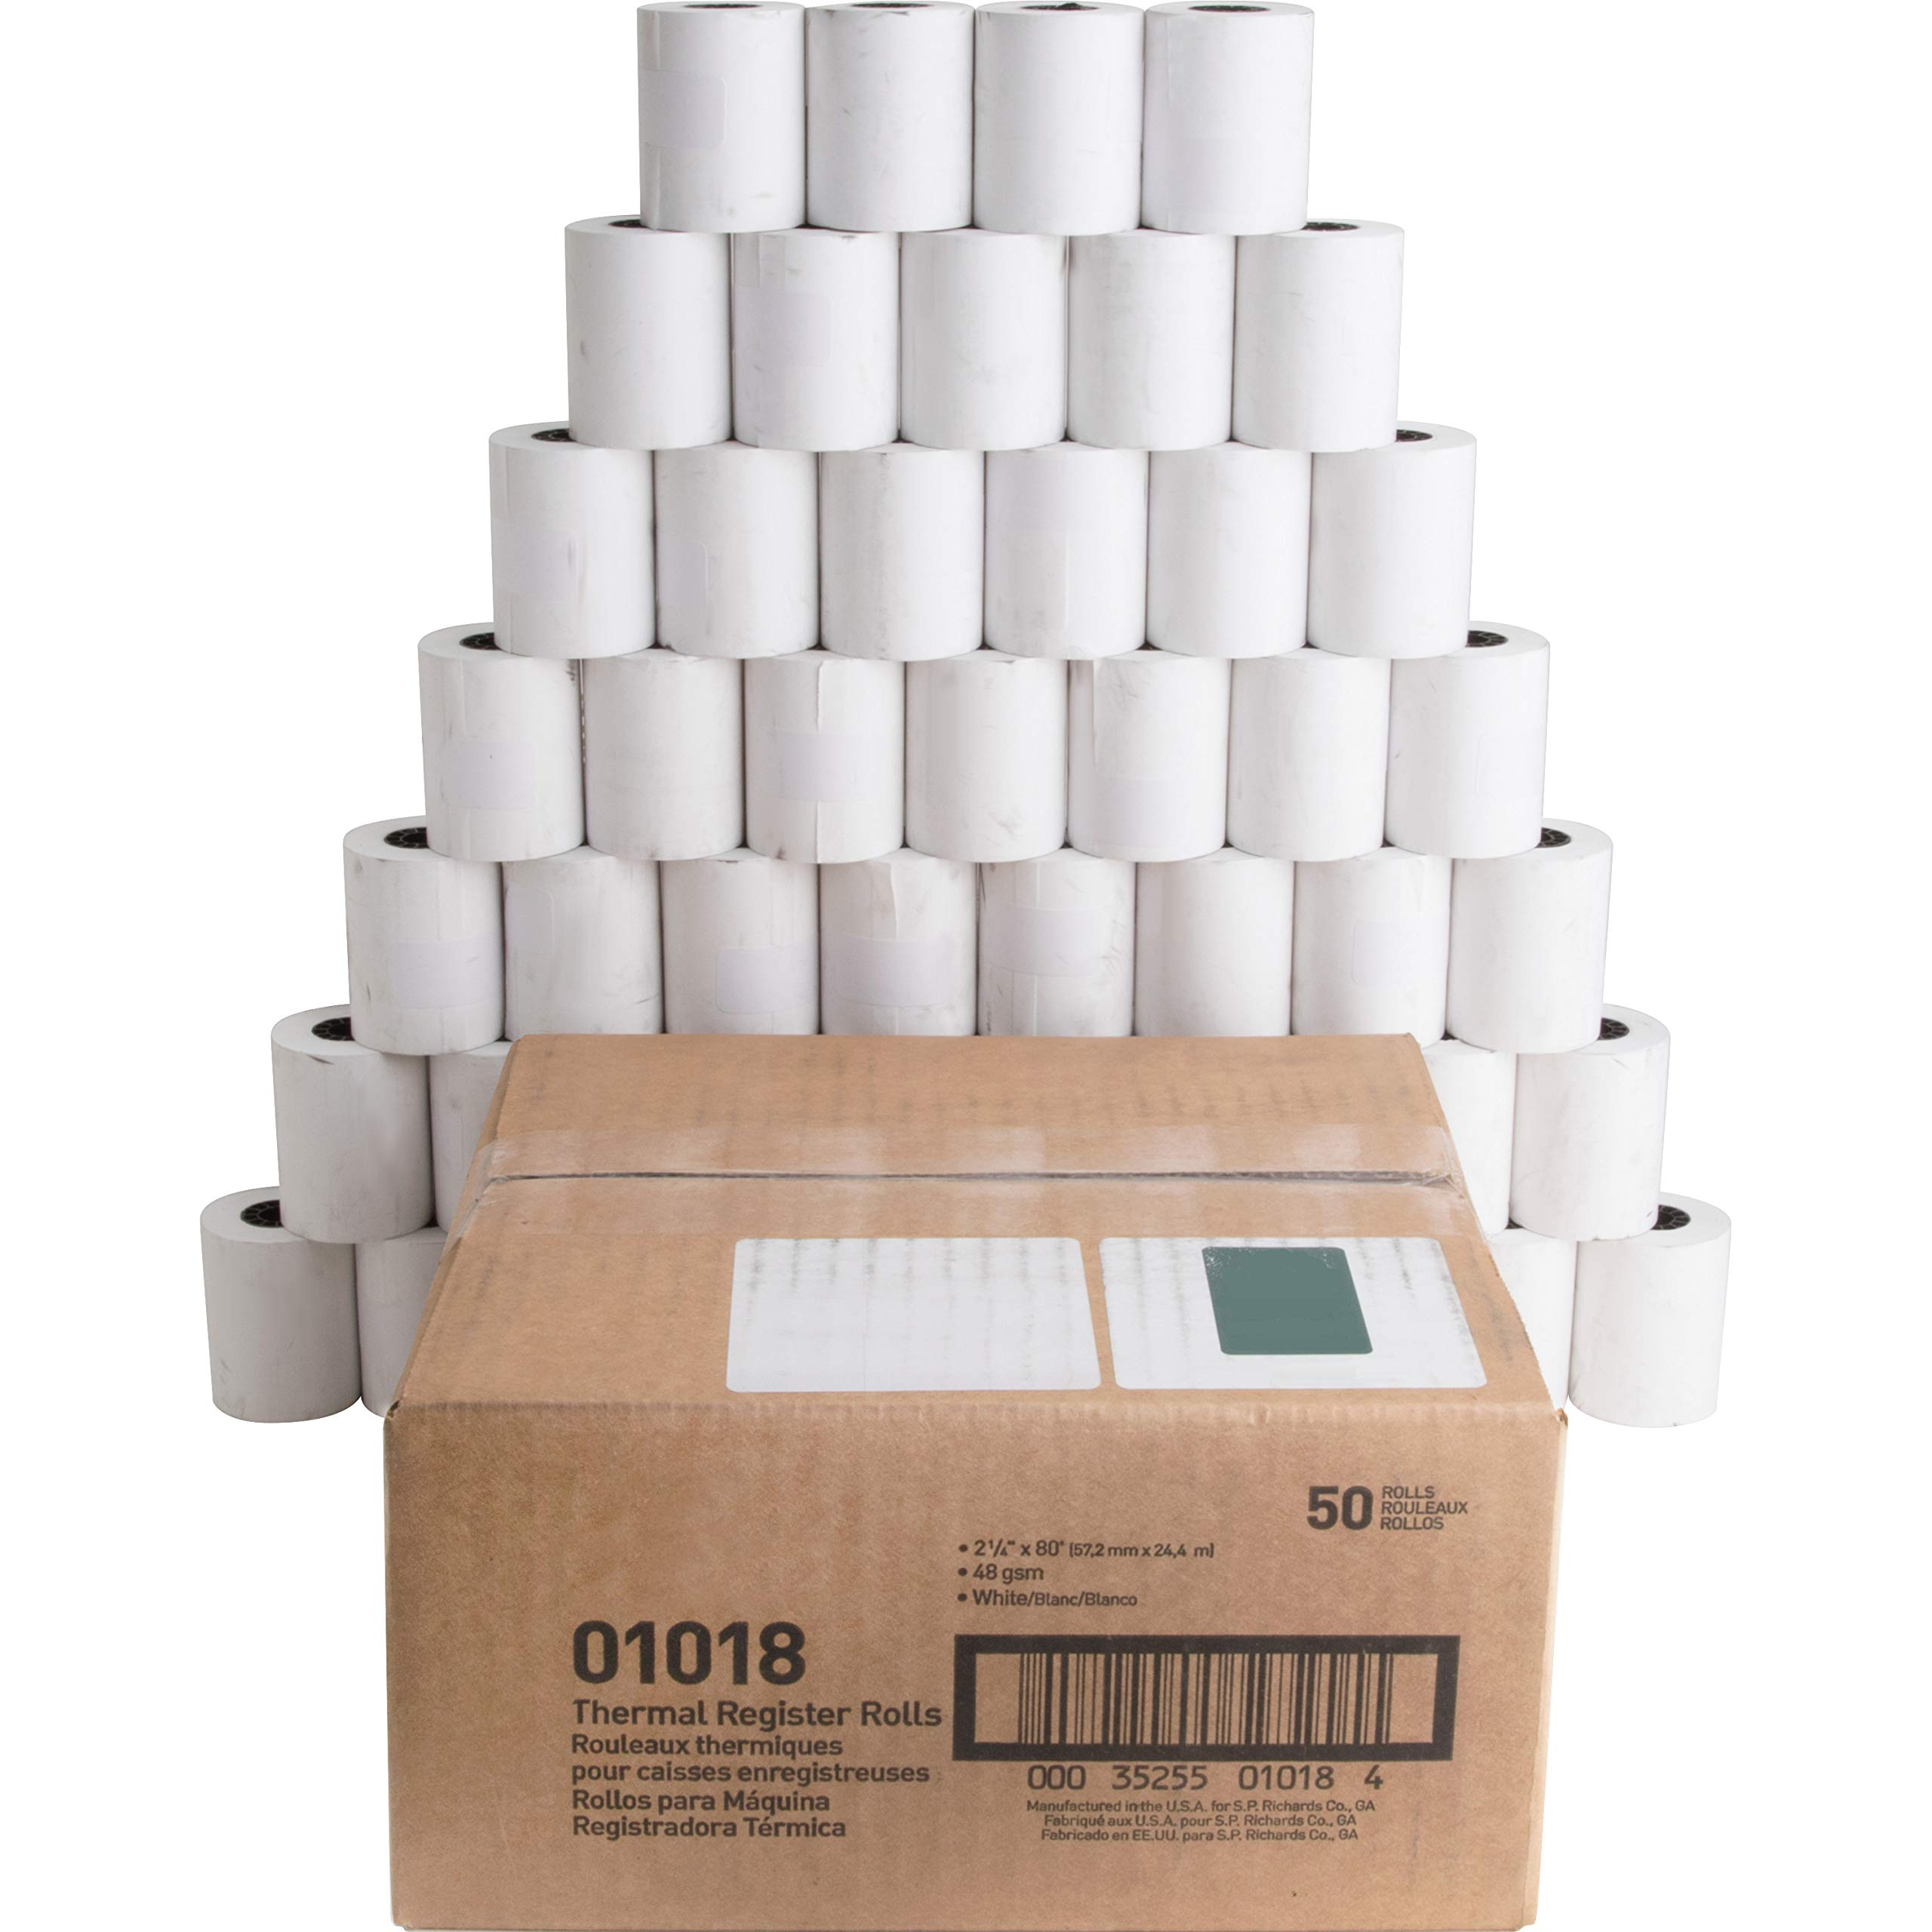 Business Source Direct Thermal Print Thermal Paper by Business Source